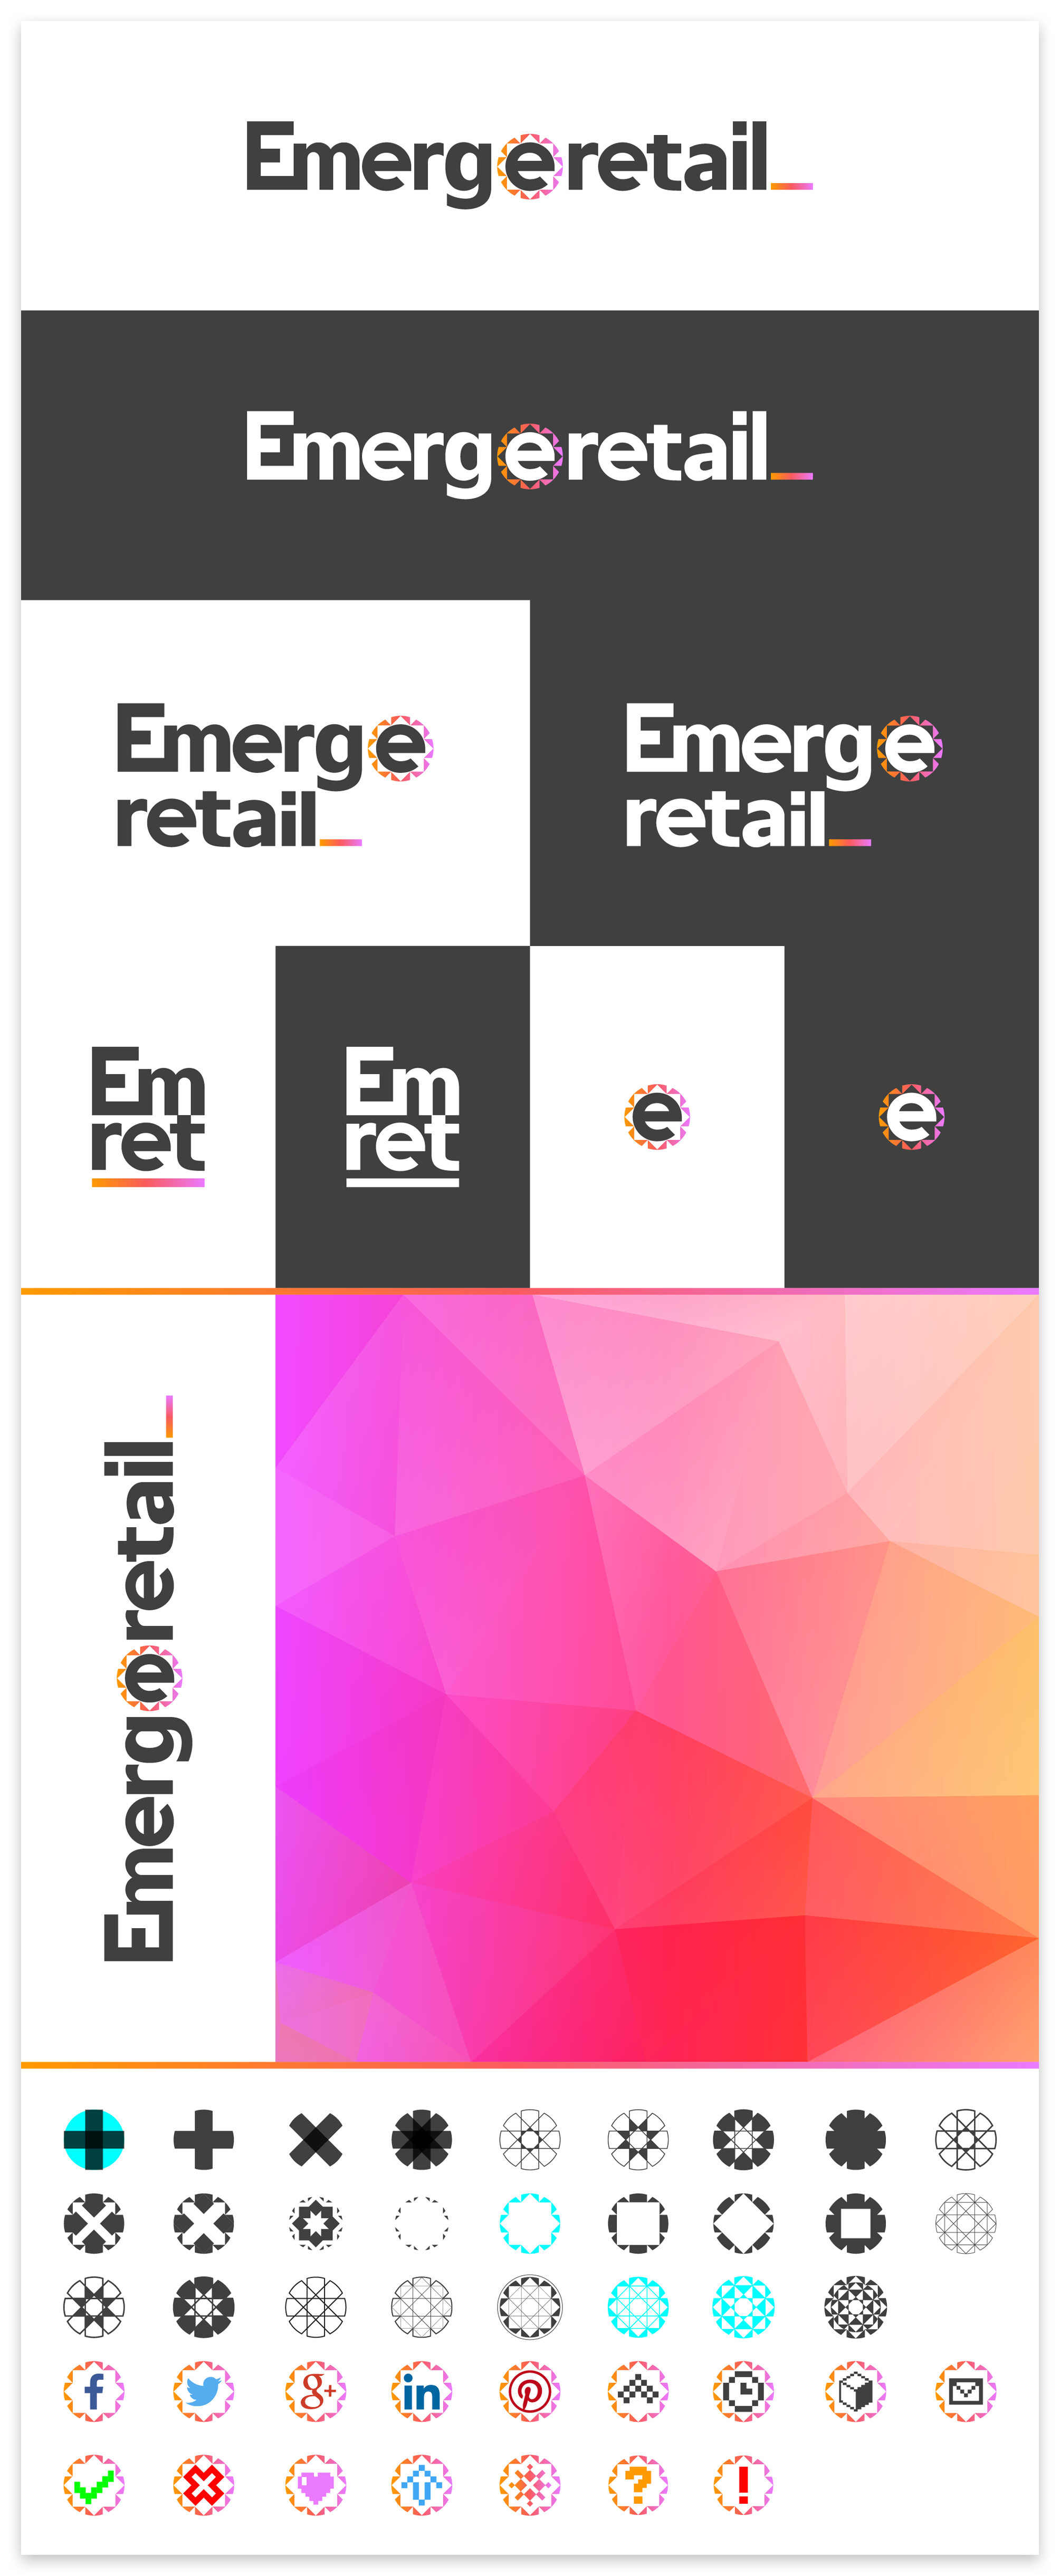 Emerge_retail_cont_5